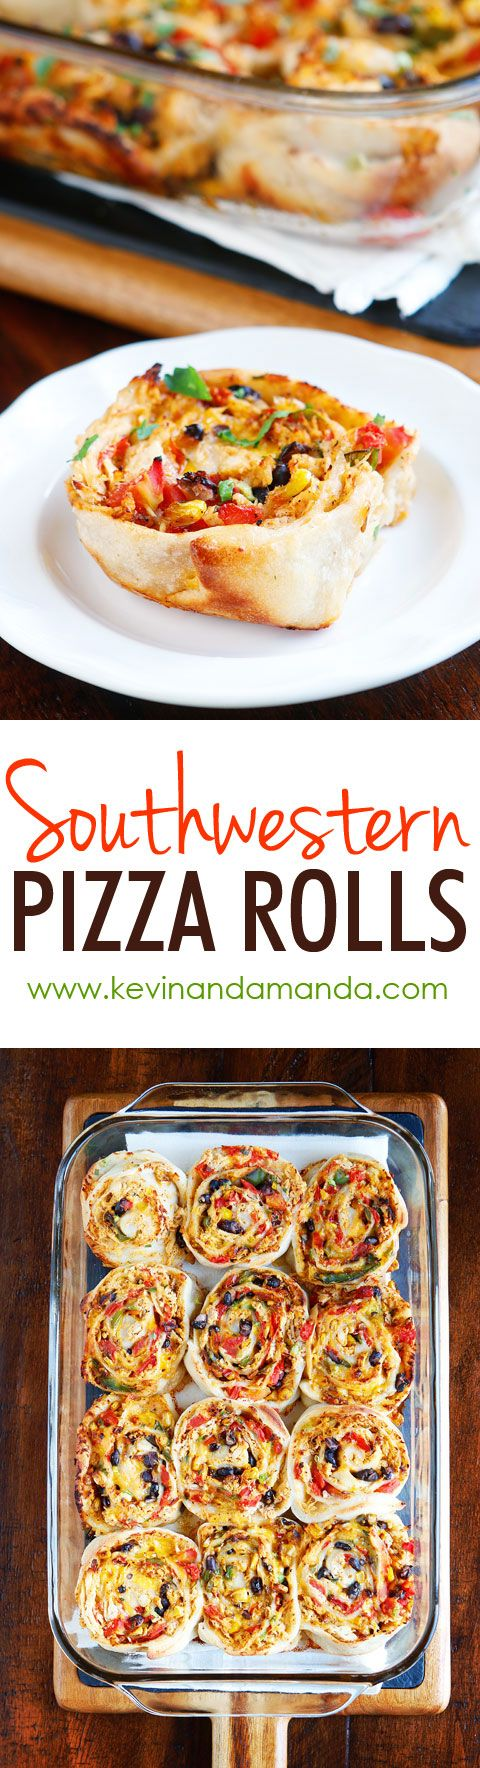 We cannot stop eating these Southwestern Chicken Pizza Rolls!! They are so good! They make me want to go back for seconds and thirds!